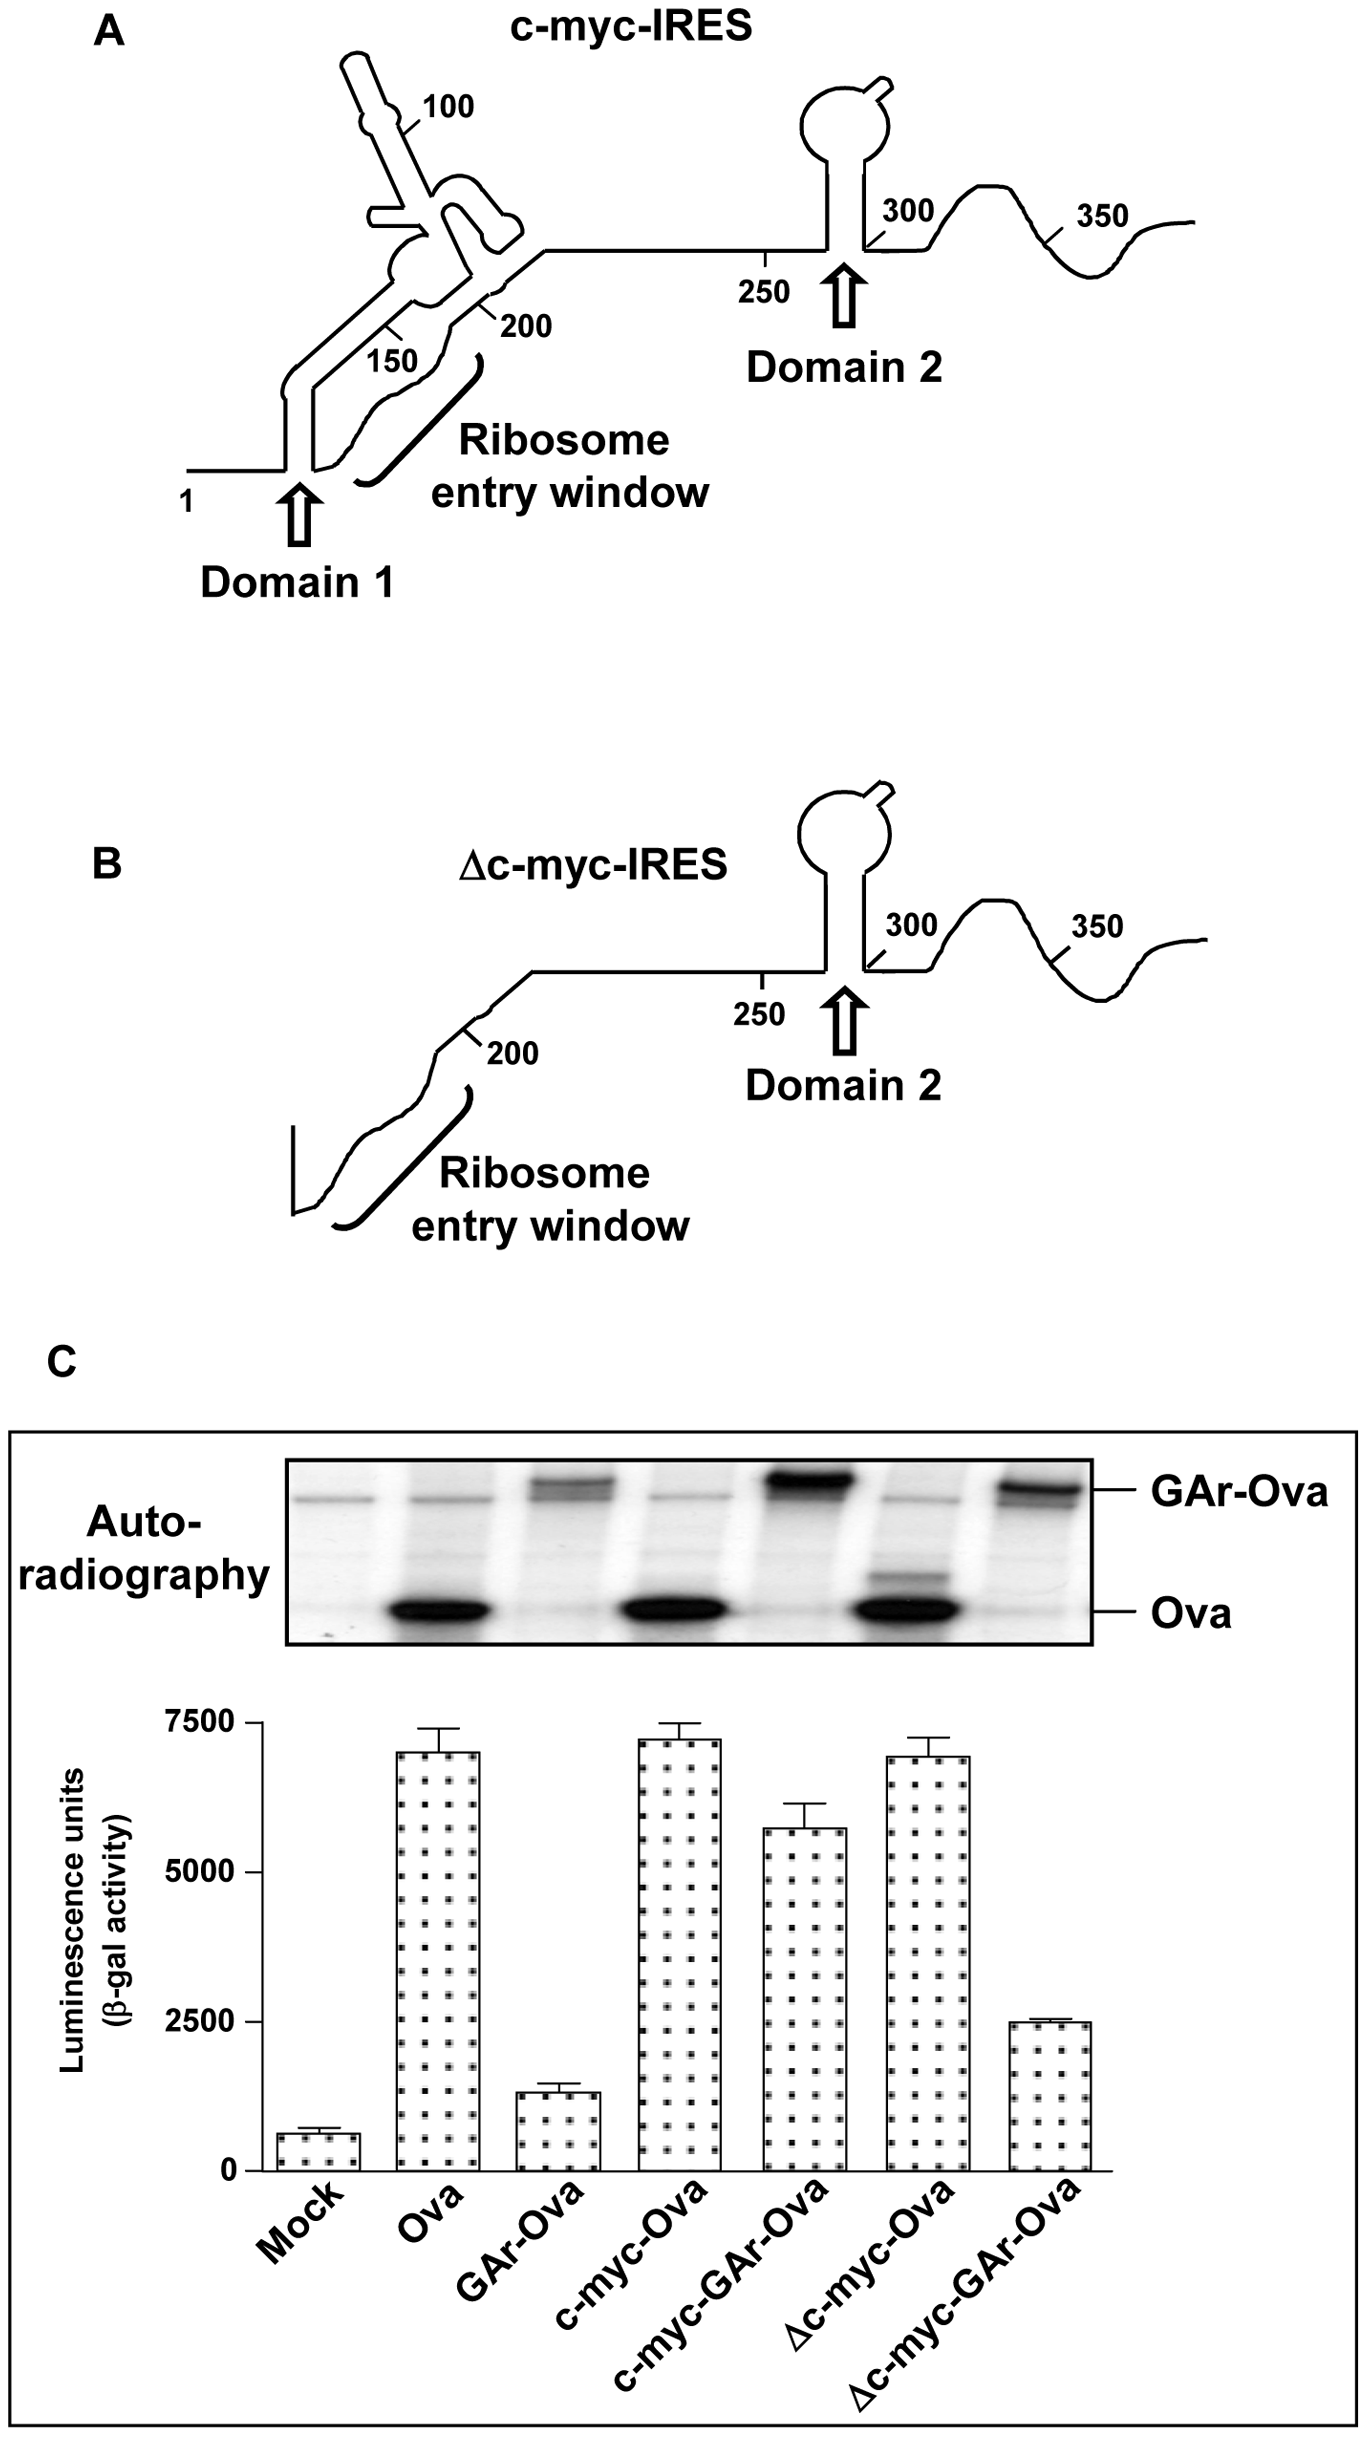 Domain 1 of the c-myc IRES is responsible for the effect of the c-myc IRES on GAr-dependent translation control.